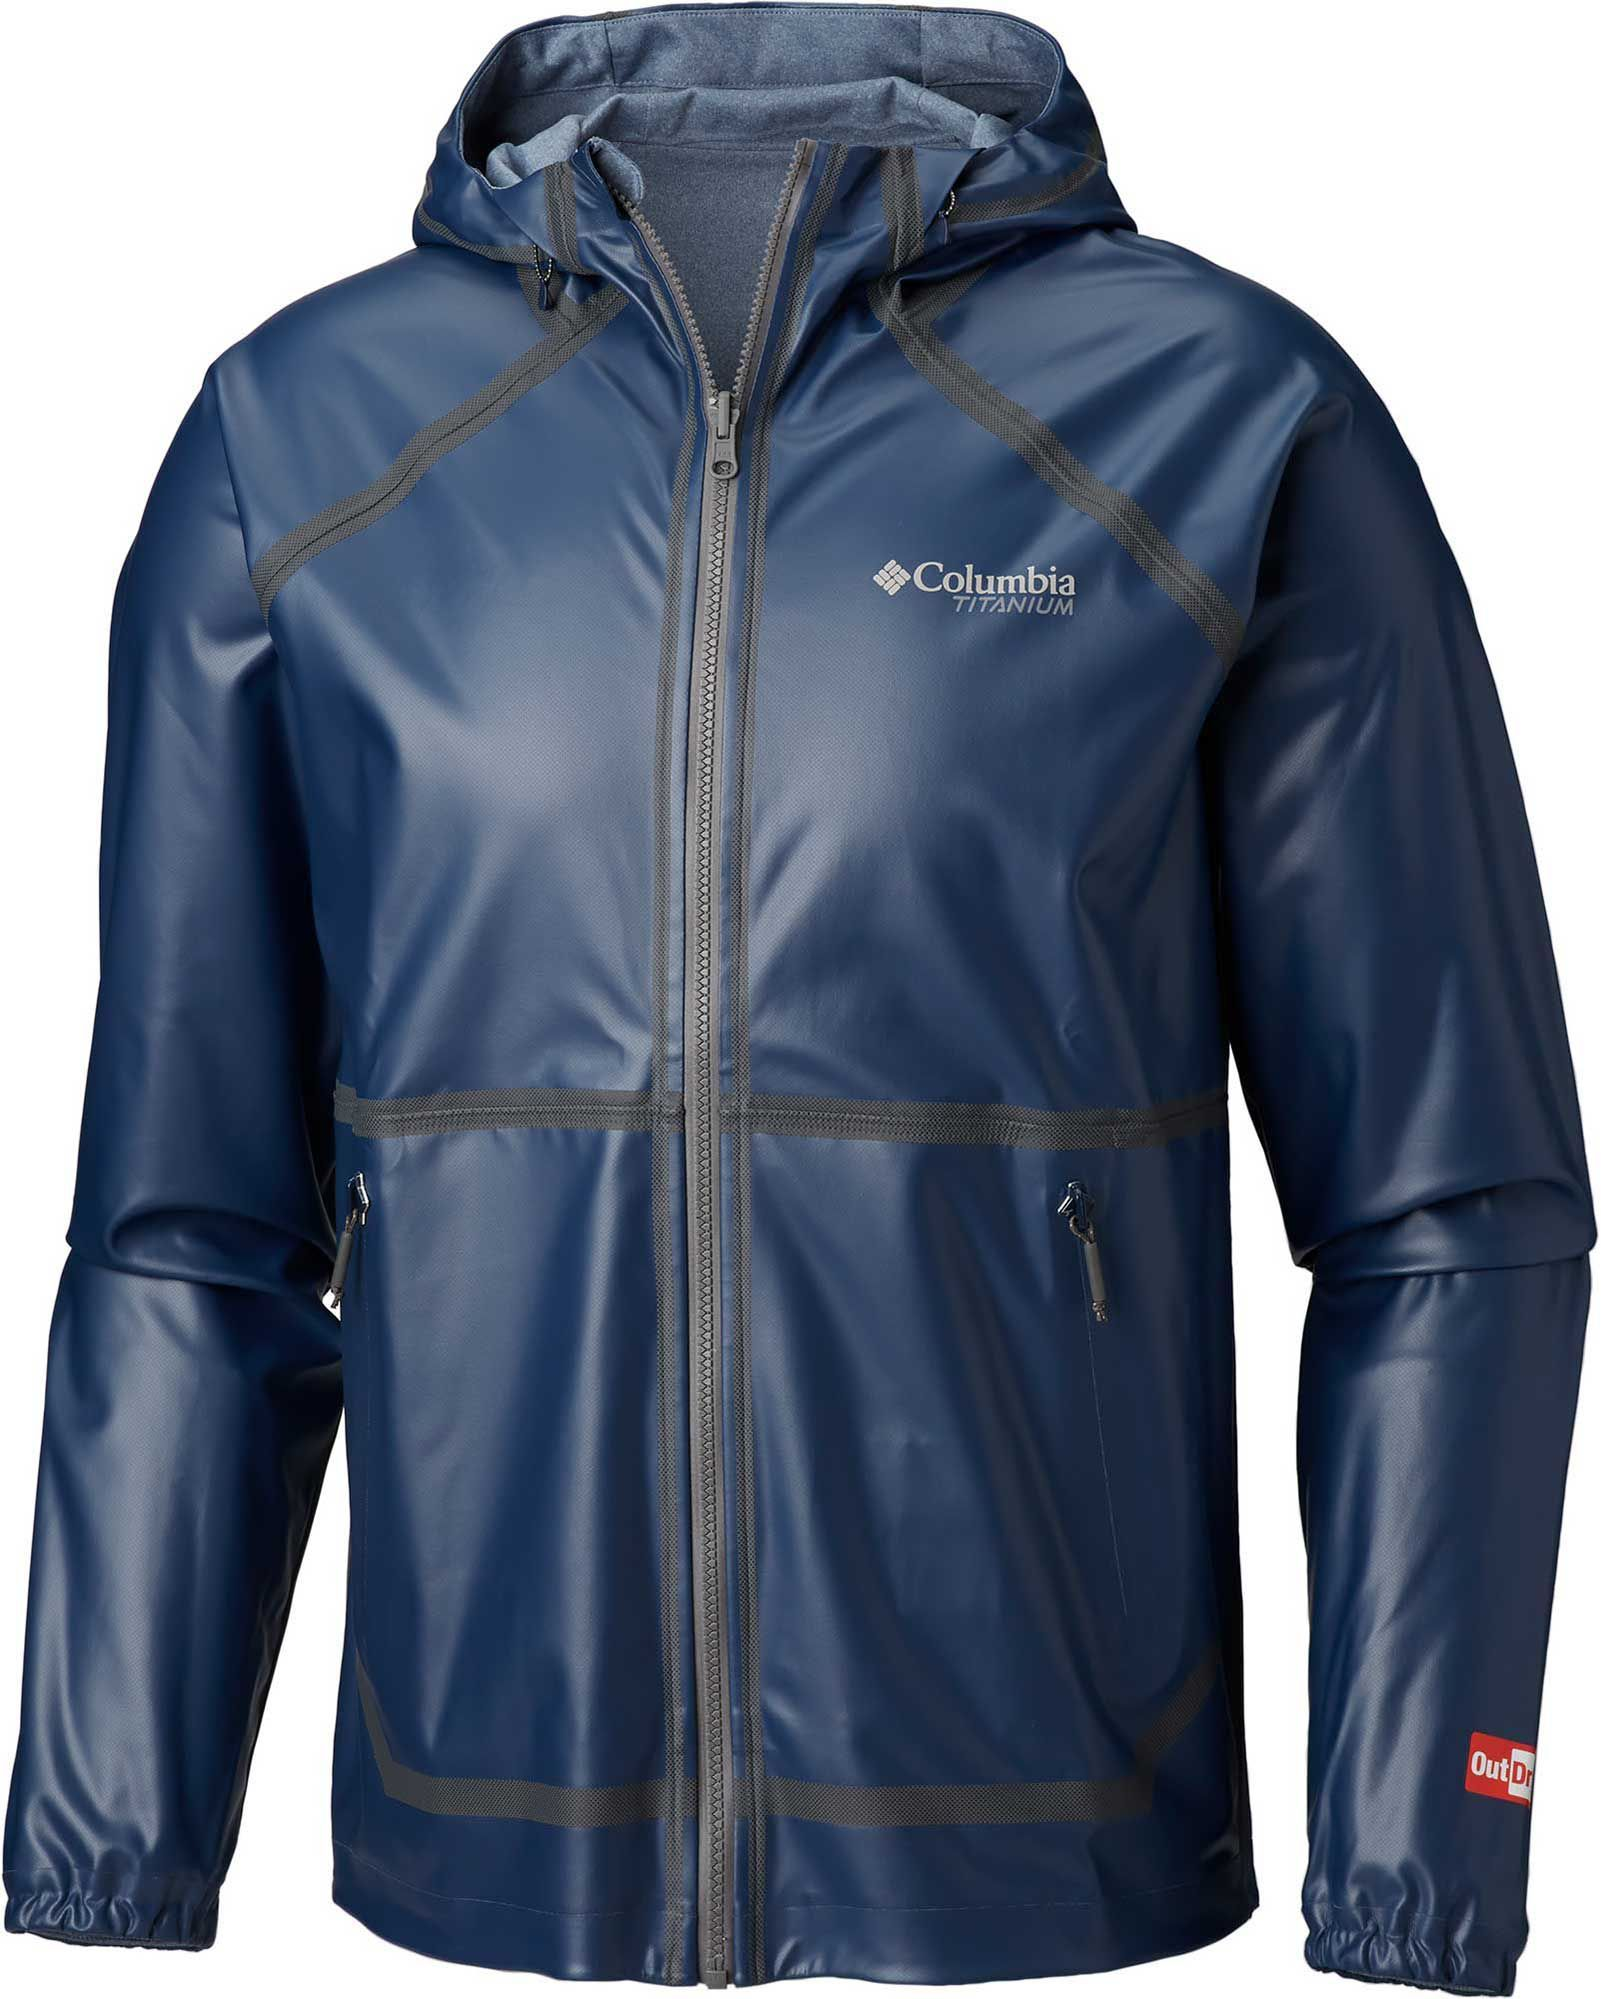 Columbia Men's Outdry Ex Reversible Jacket | Jackets, Men's